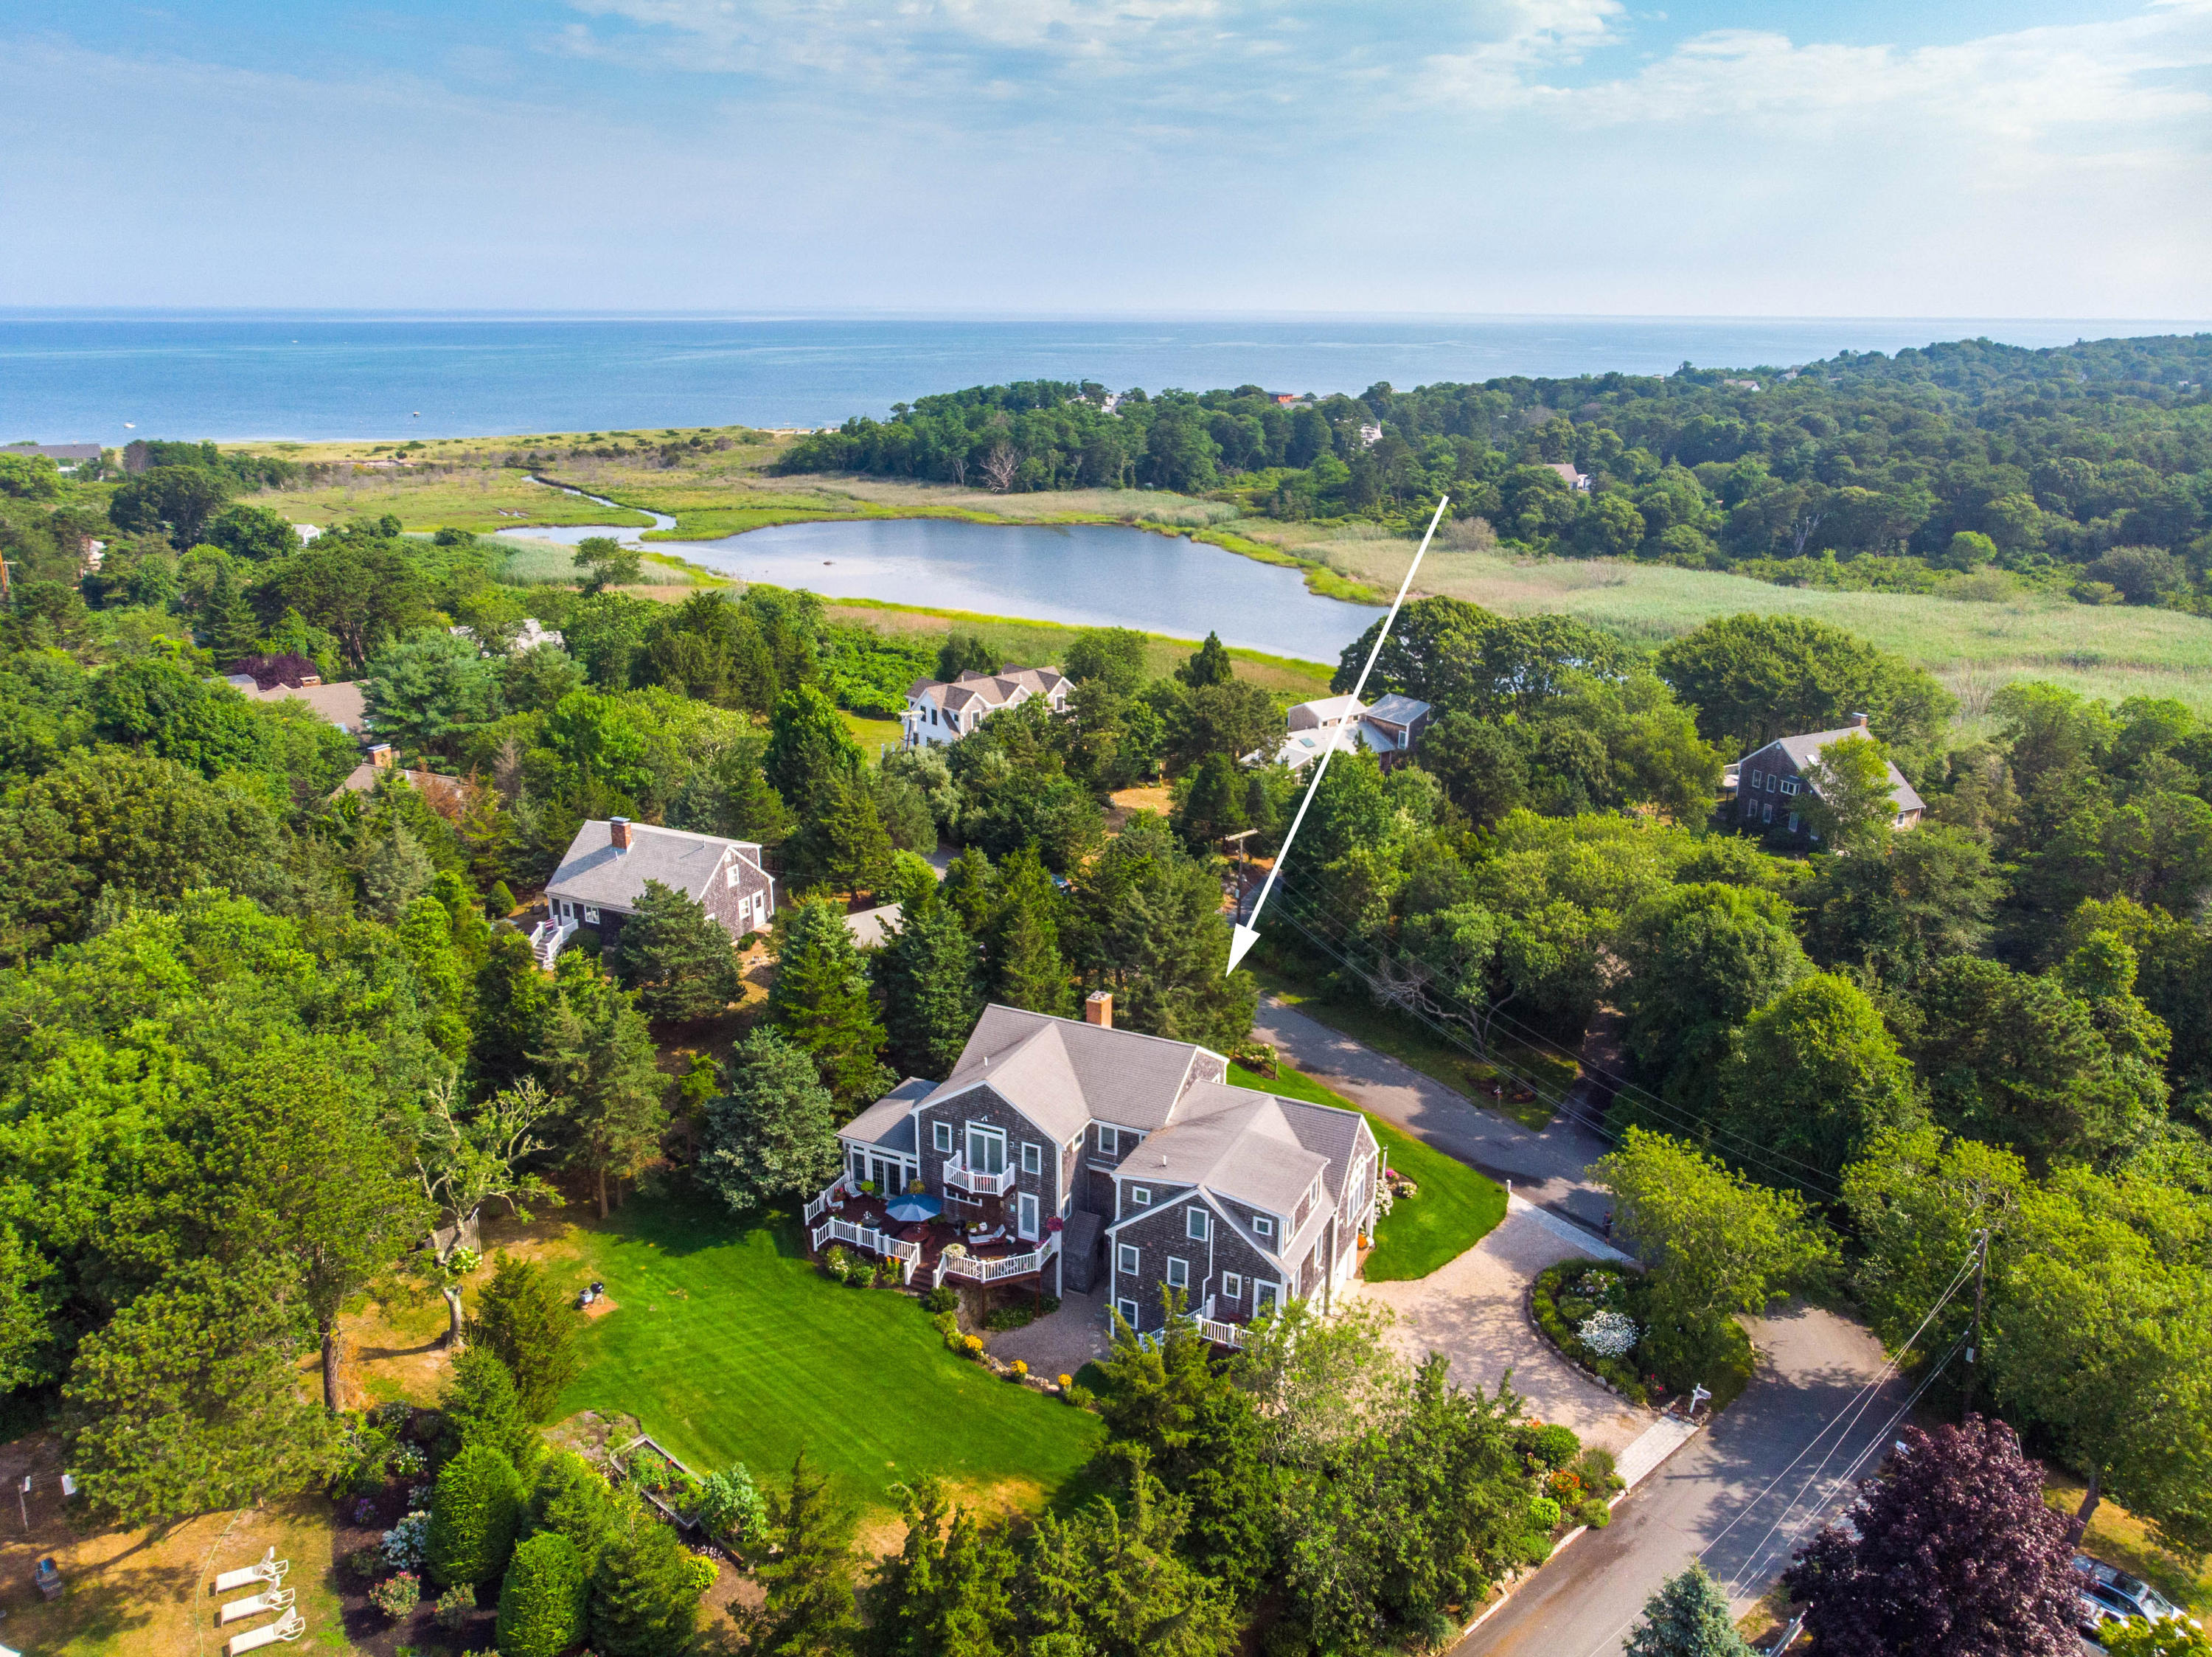 43 Captain Youngs Way, Brewster MA, 02631